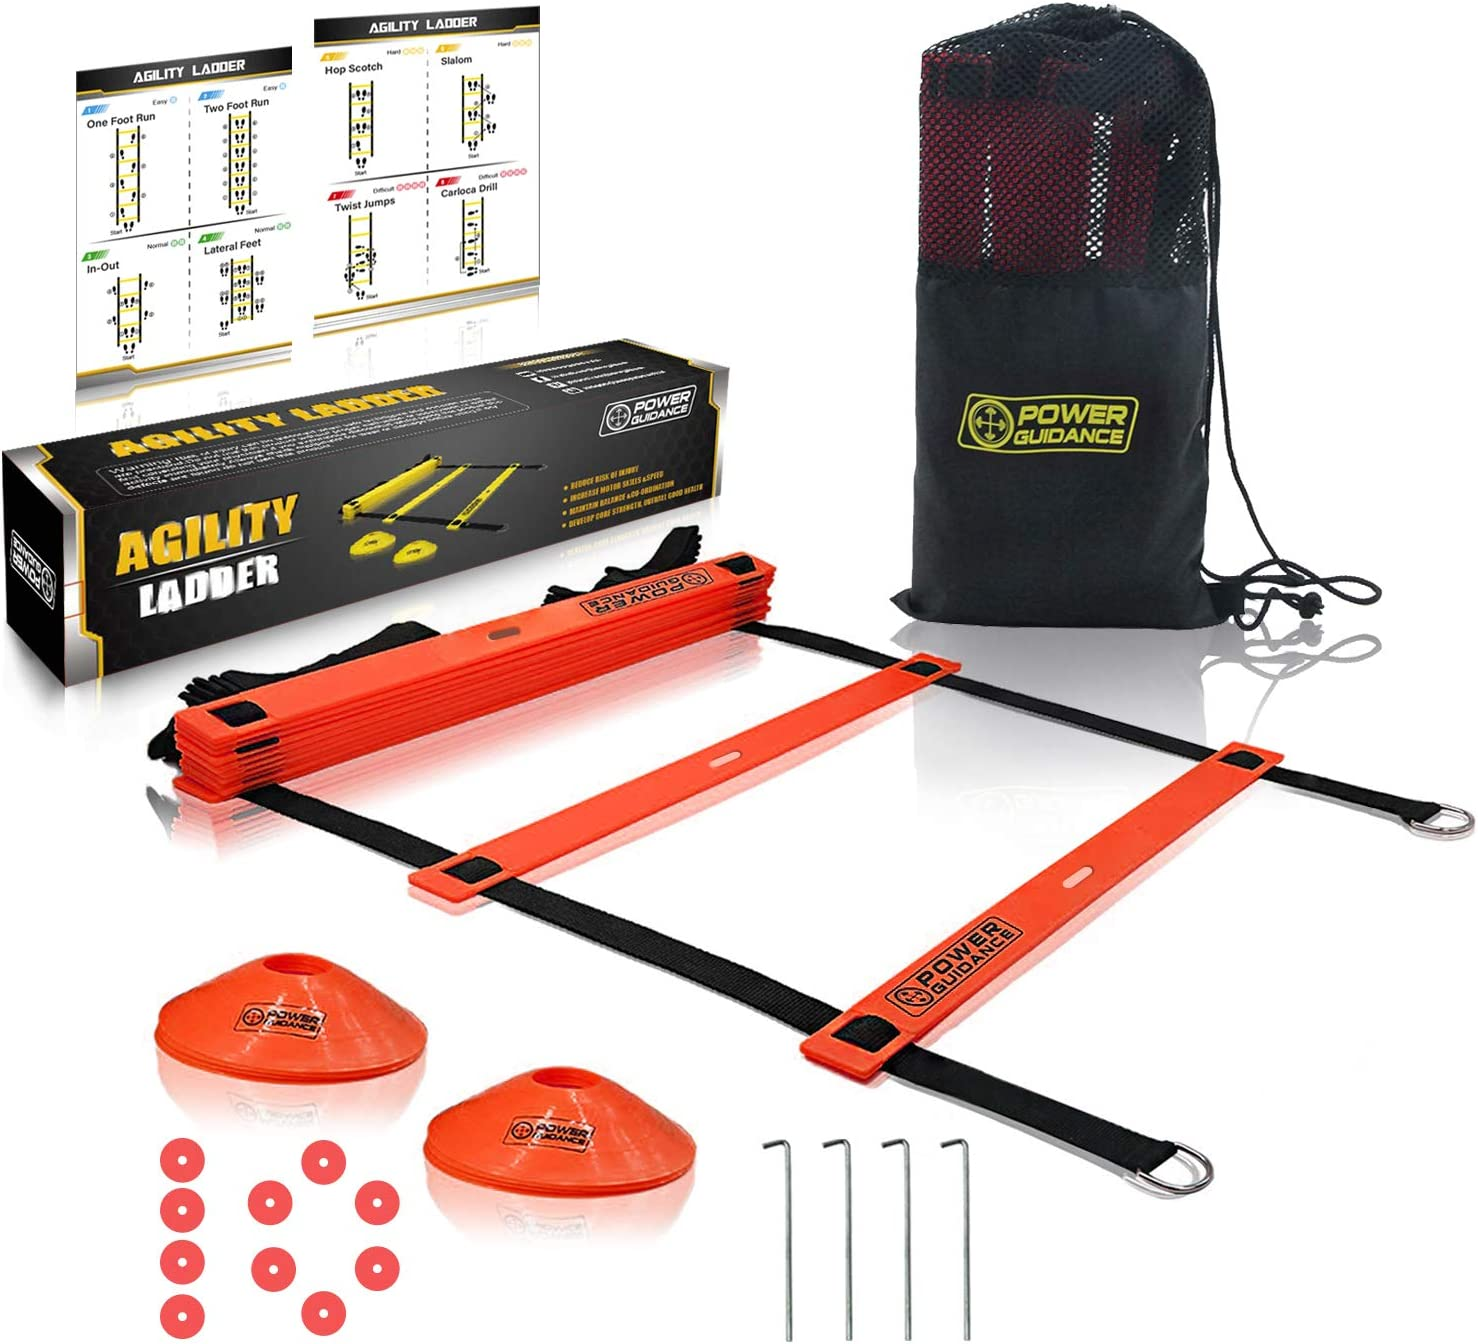 POWER GUIDANCE Agility Ladder (20 Feet) for Speed & Agility Trainning - with 12 Heavy Duty Plastic Rungs, Ground Stakes, Carry Bag & 10 Sports Cones